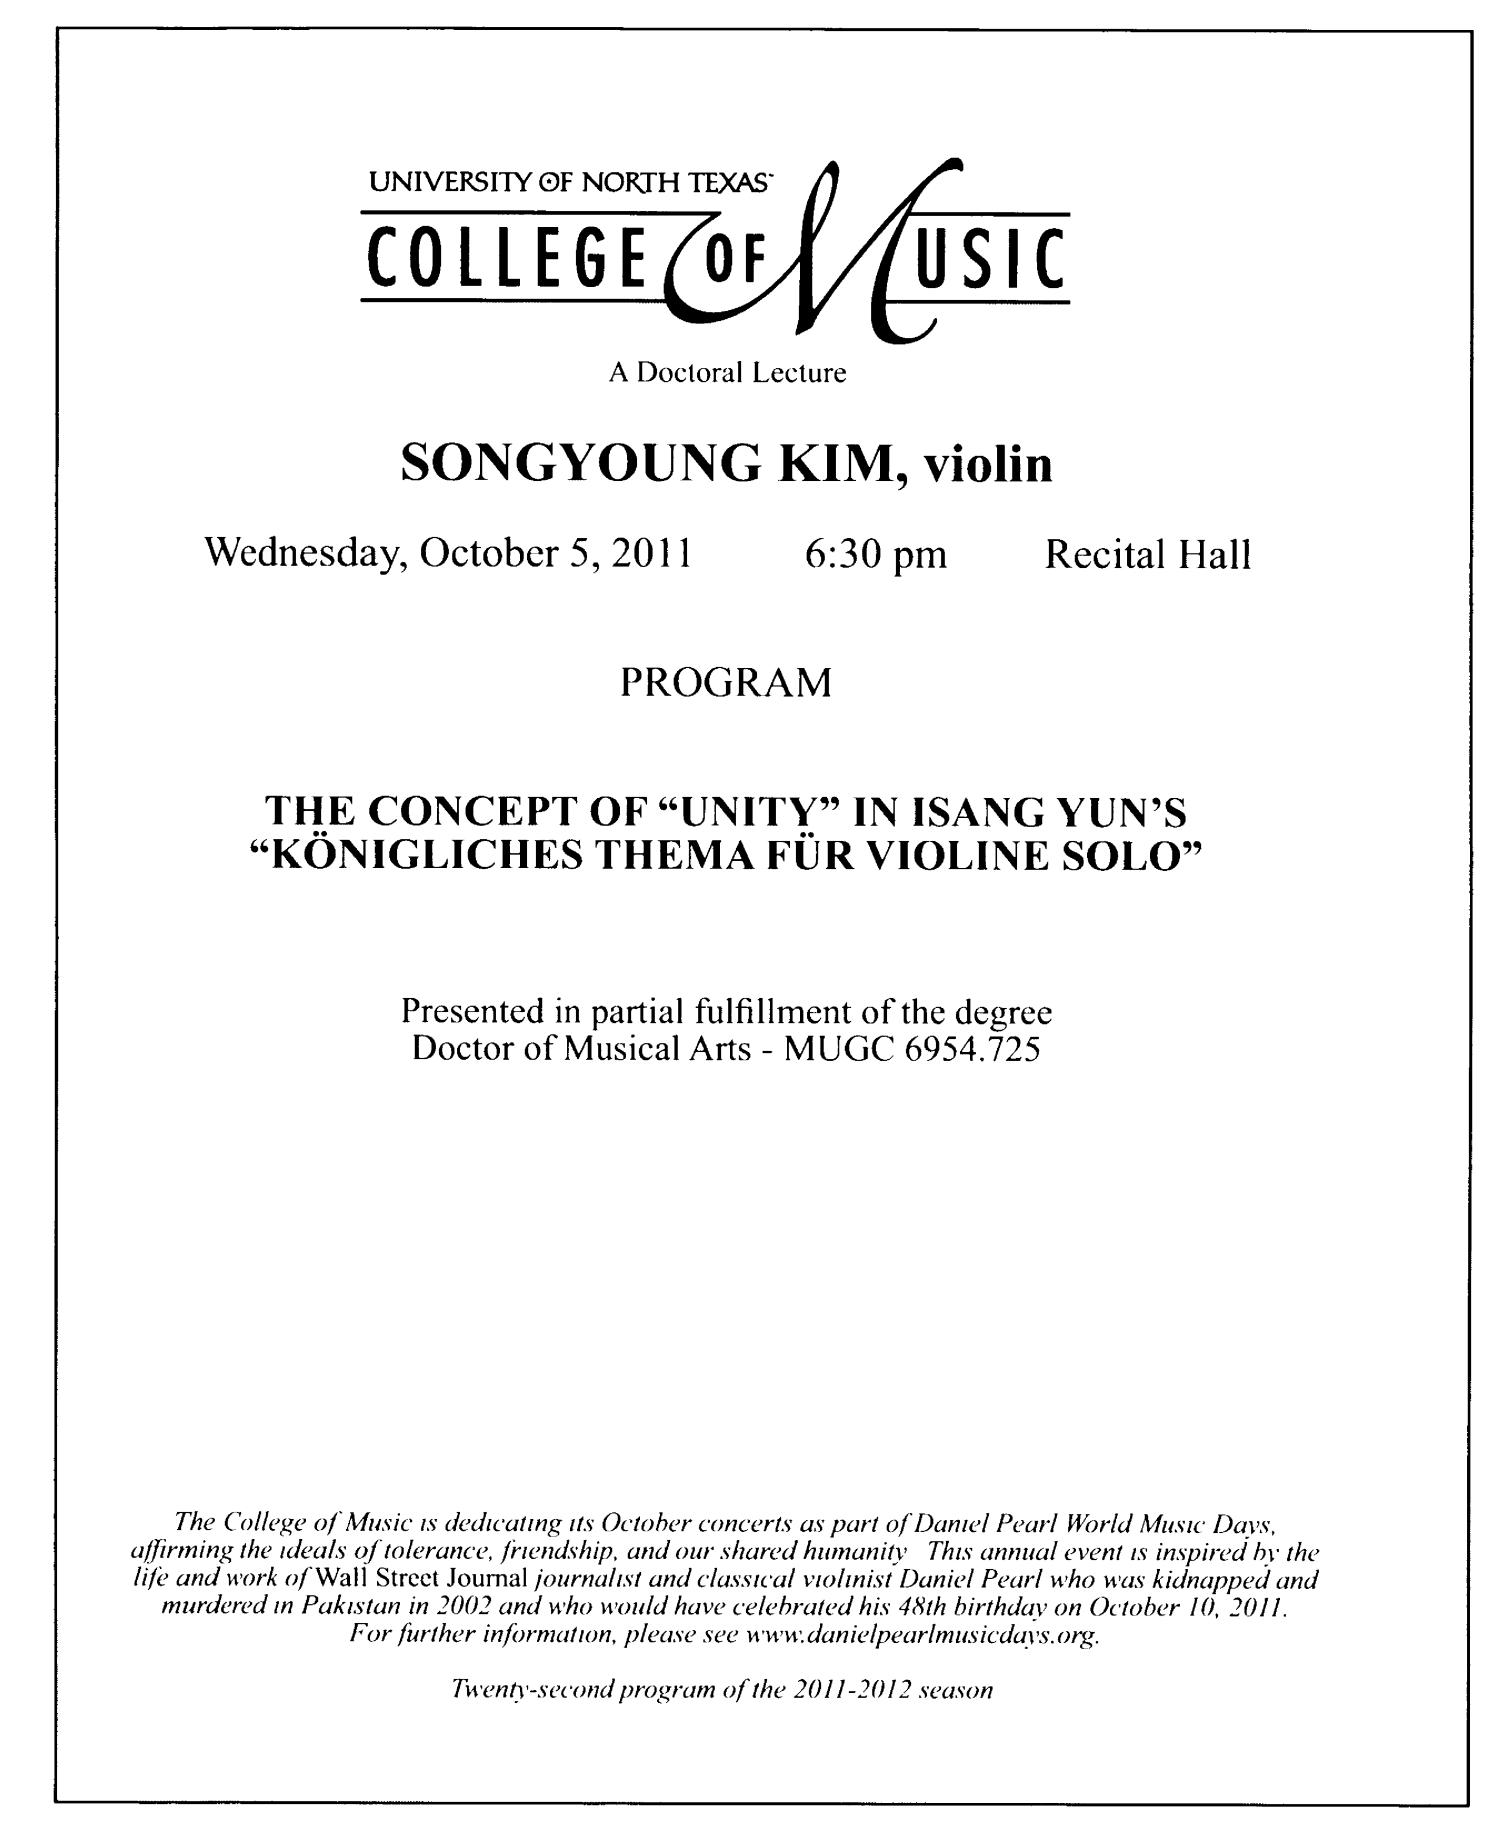 College of Music Program Book 2011-2012: Student Performances, Volume 1                                                                                                      16